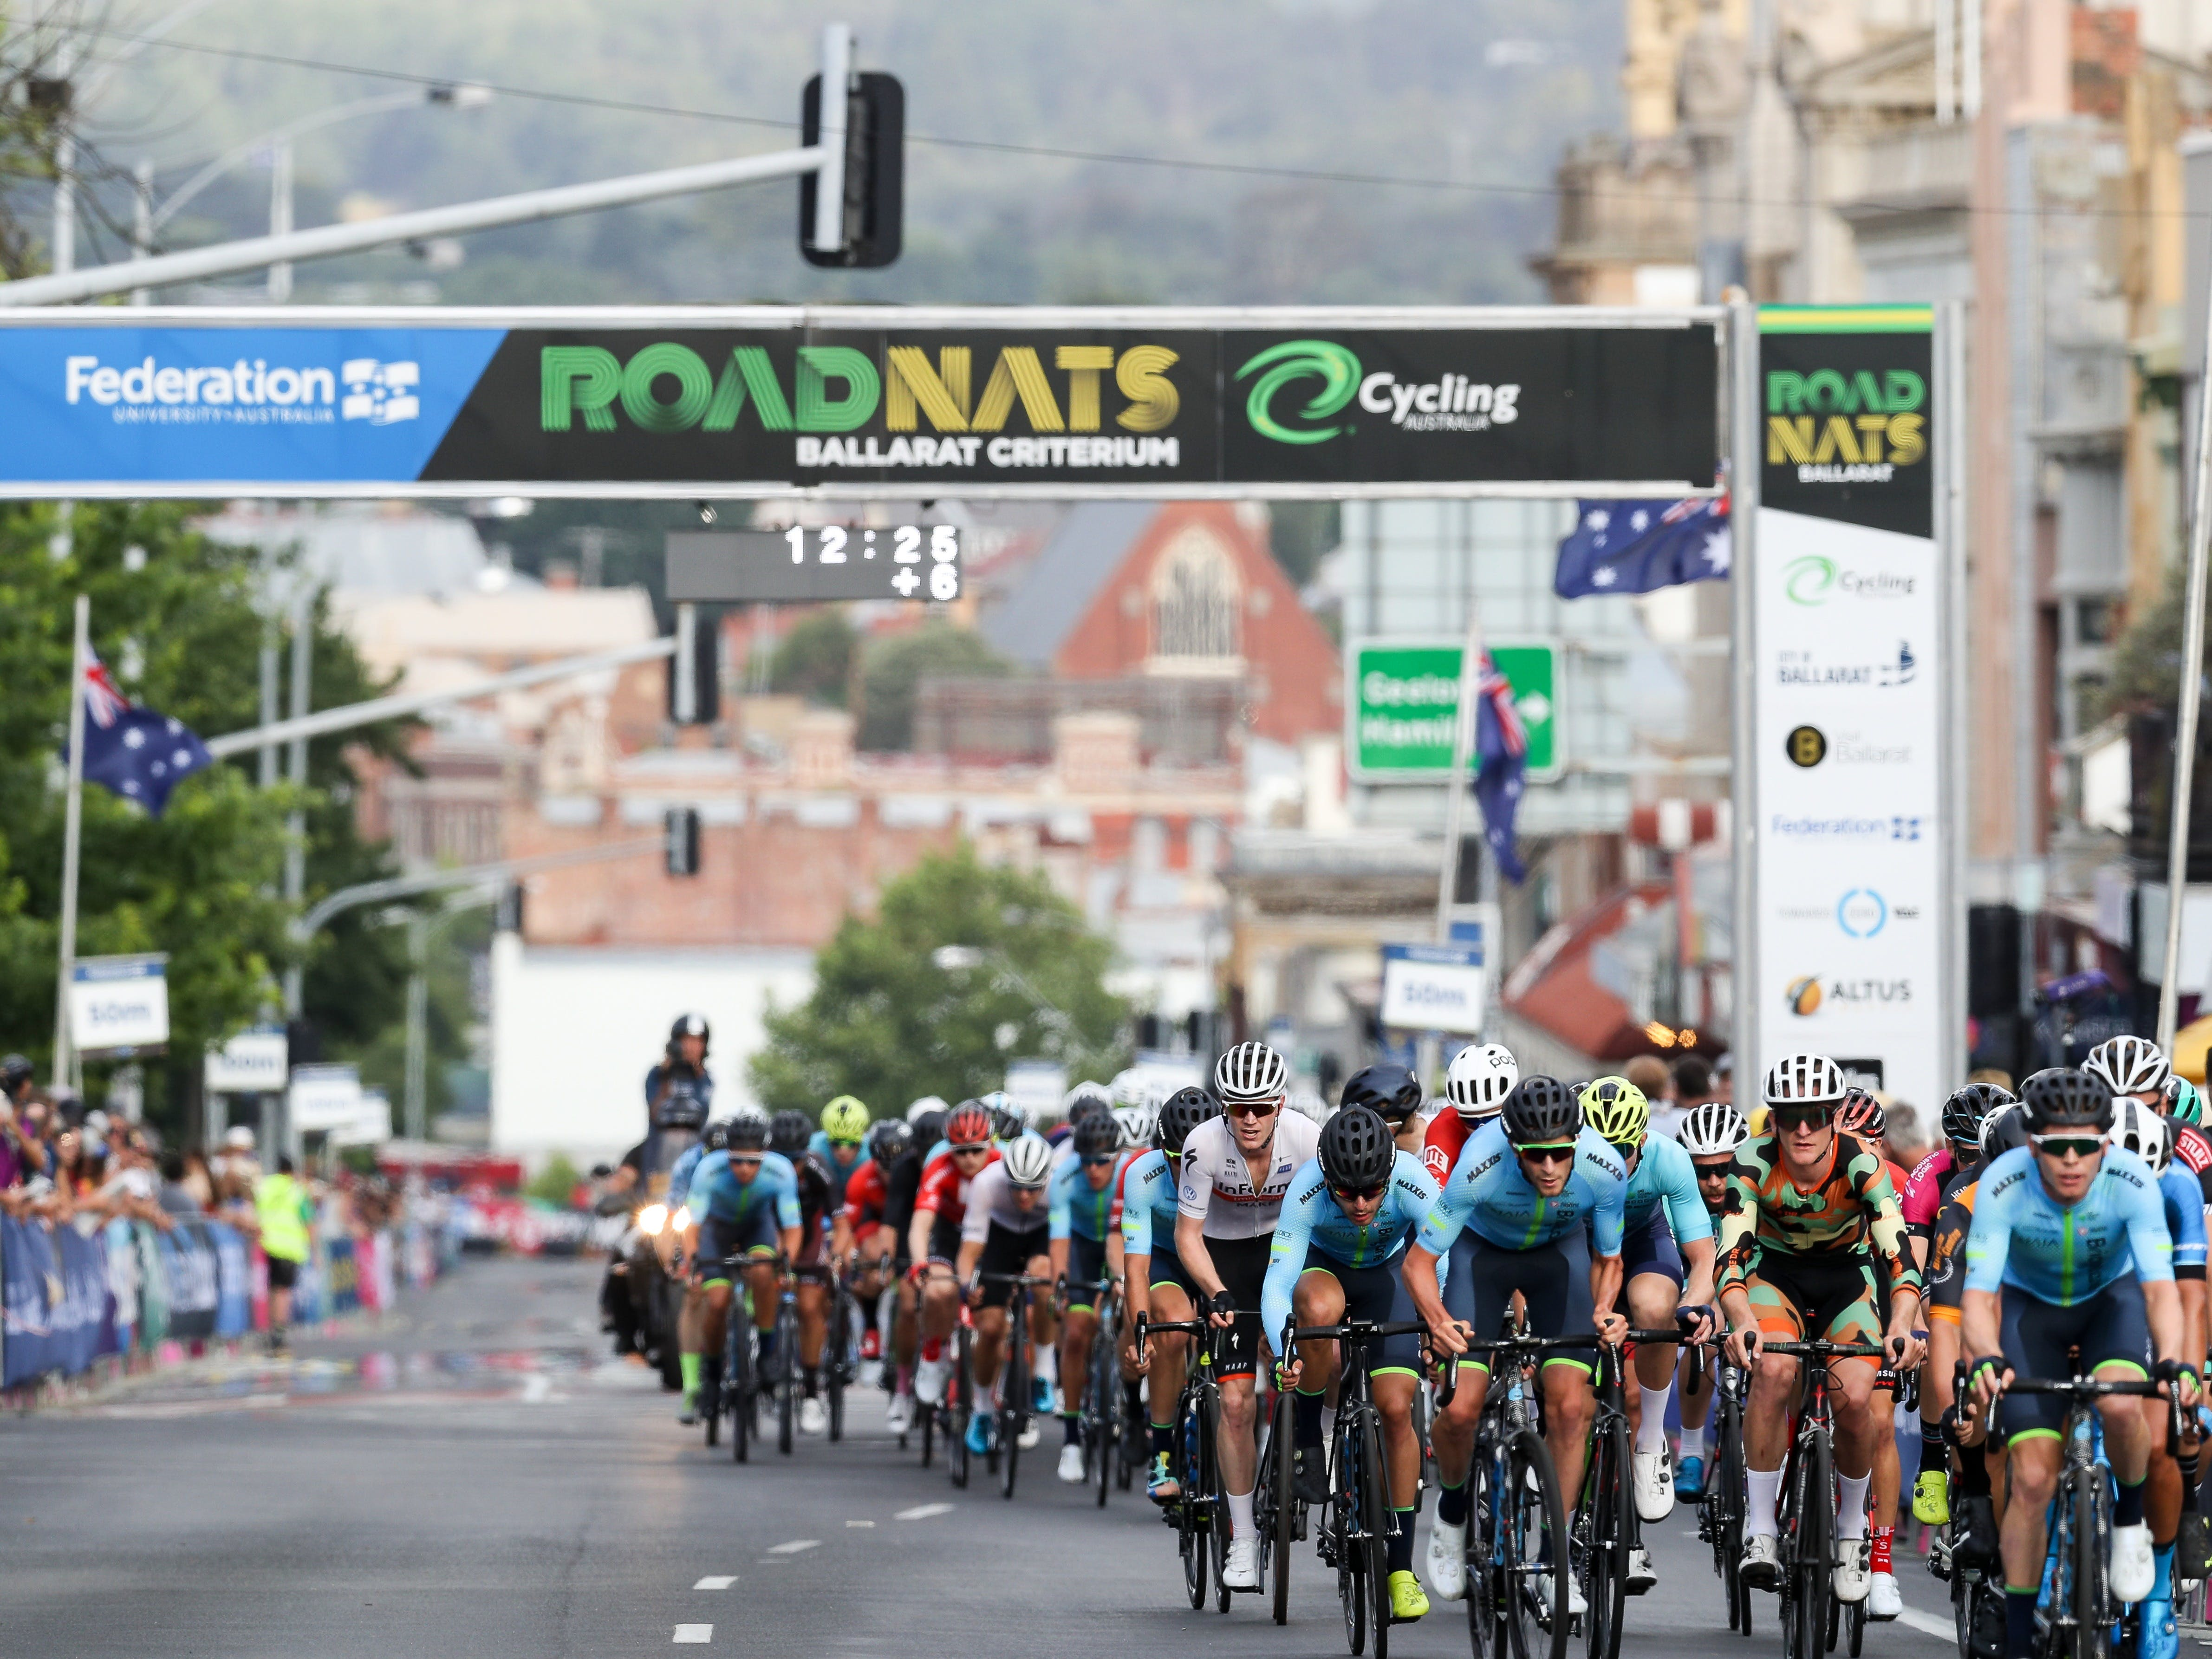 Federation University Criterium National Championships - Ballarat - Tourism Bookings WA